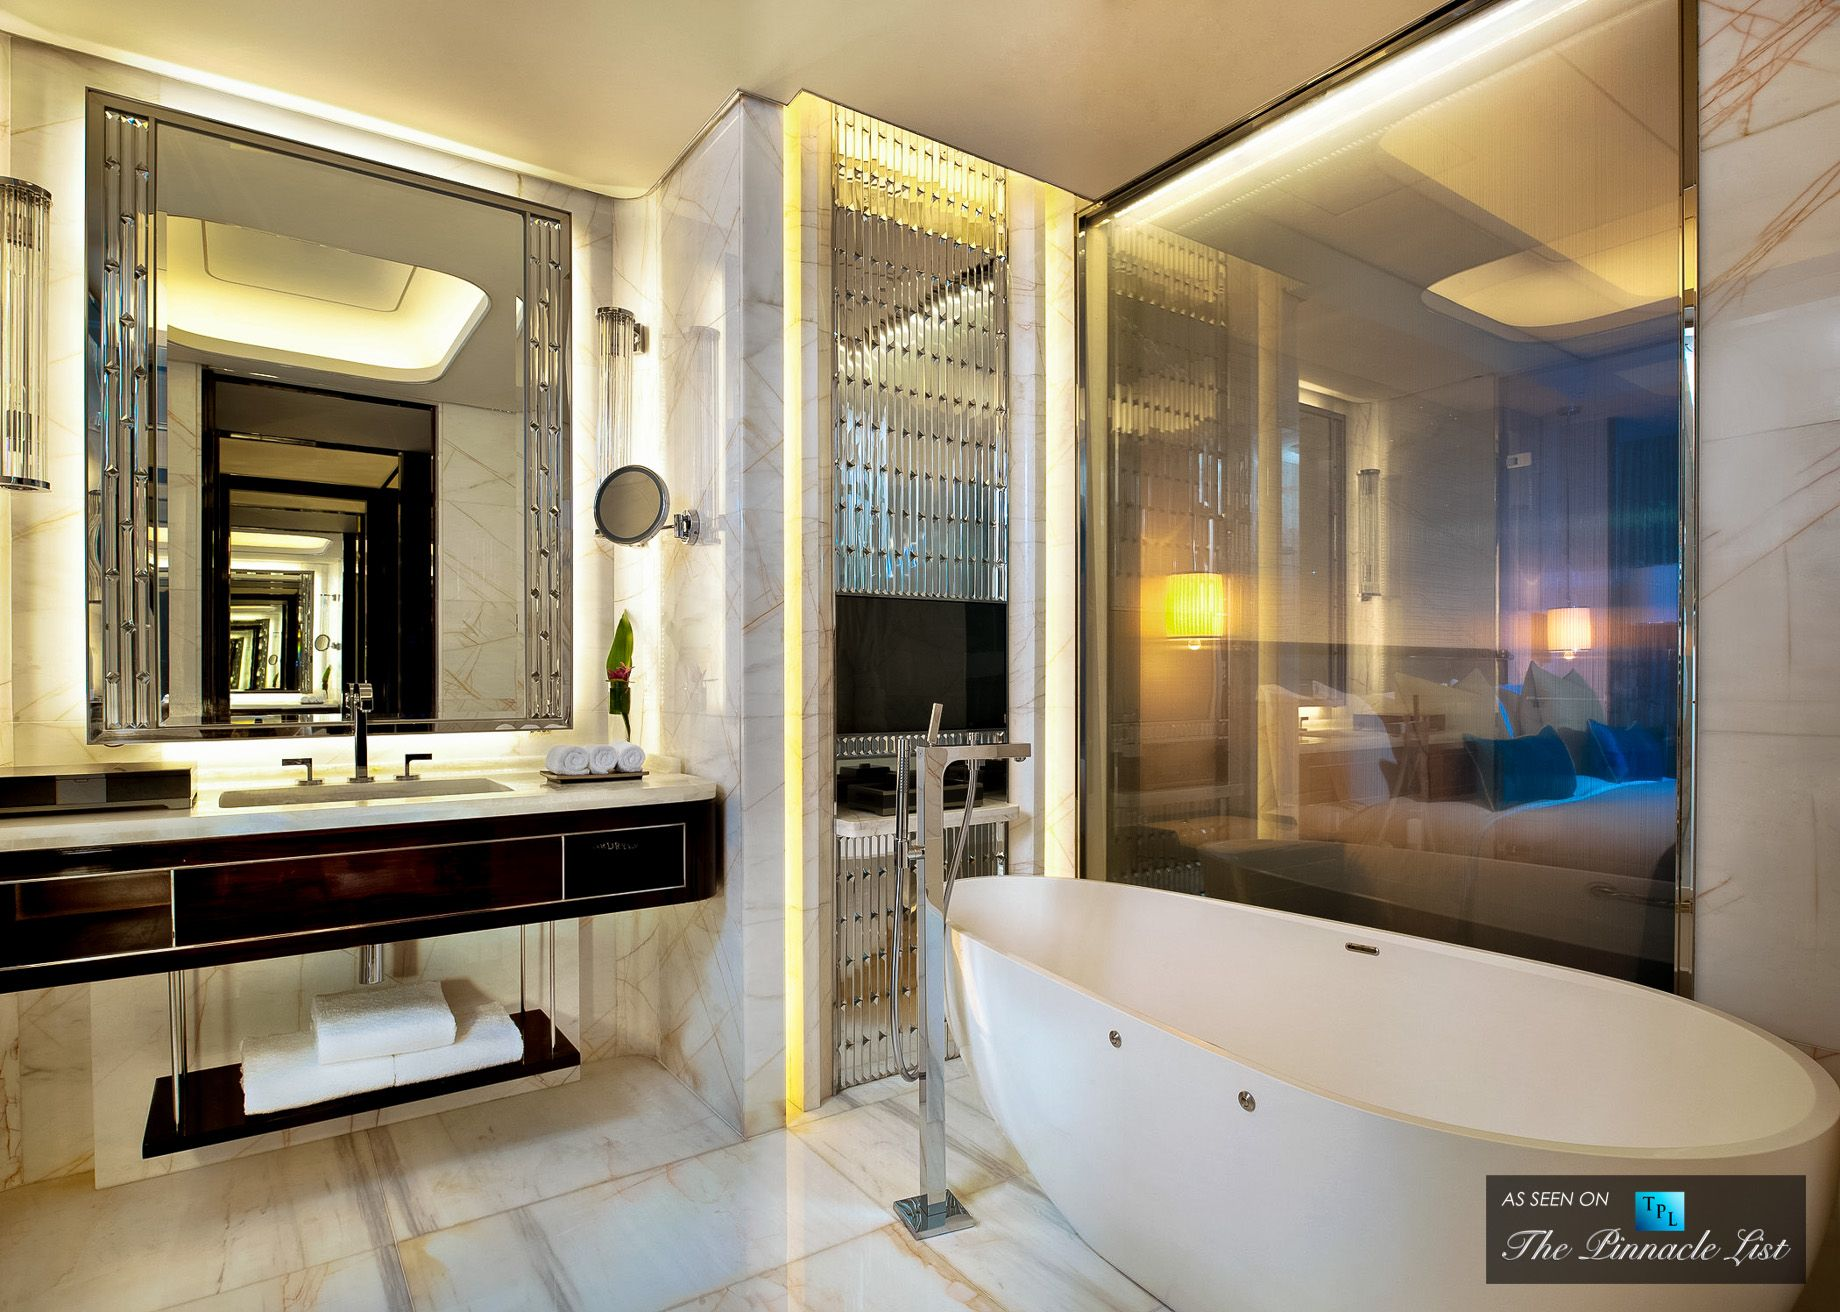 St regis luxury hotel shenzhen china deluxe bathroom for Great looking bathrooms